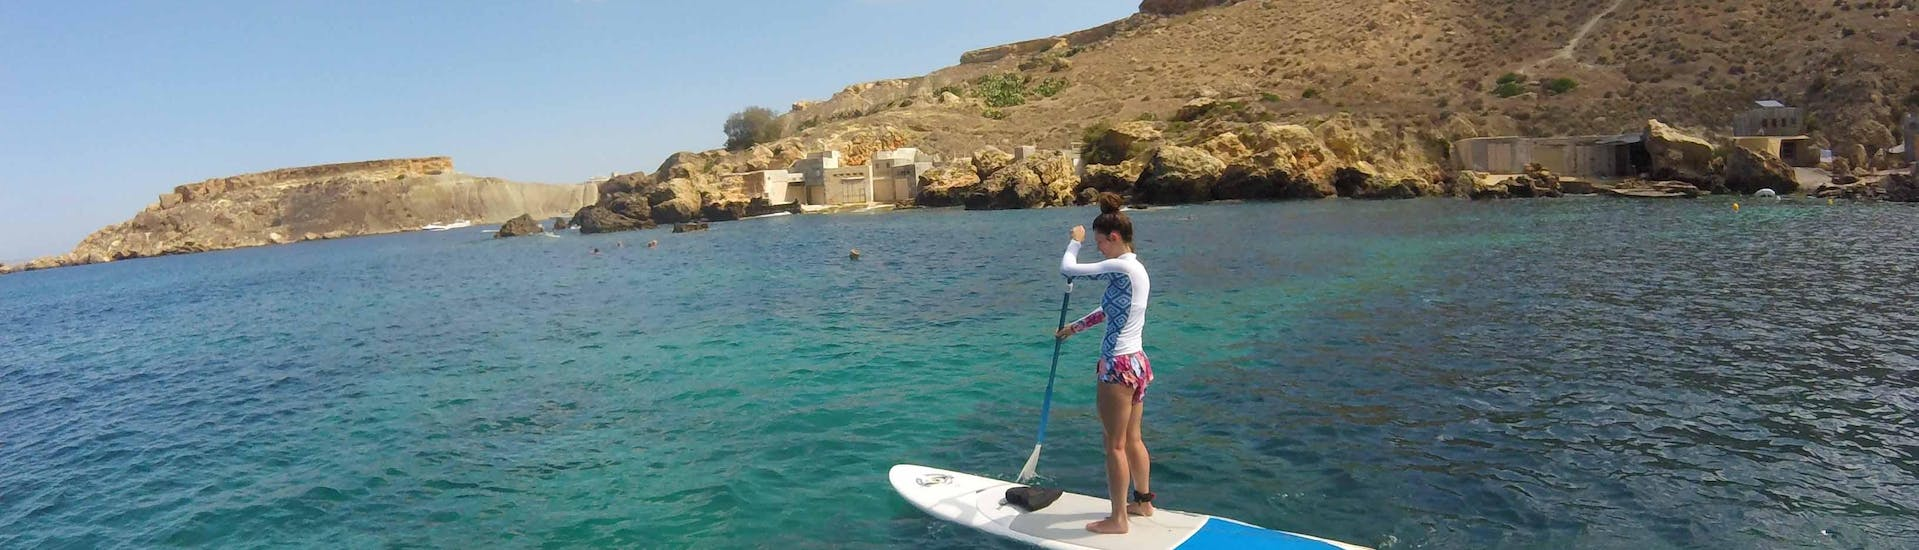 Stand Up Paddle Tour in Malta